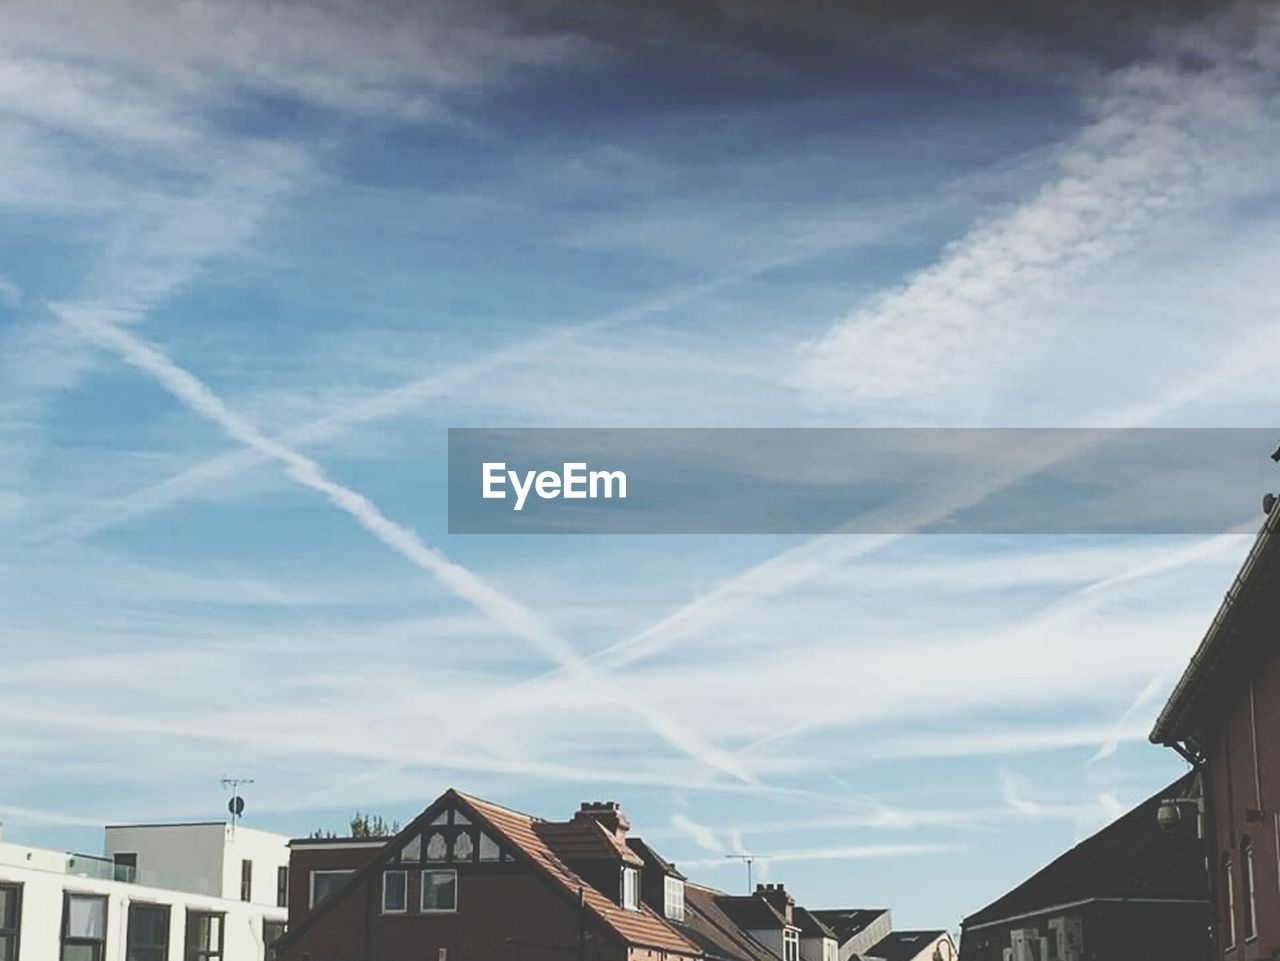 architecture, building exterior, built structure, house, day, no people, sky, outdoors, vapor trail, roof, low angle view, nature, contrail